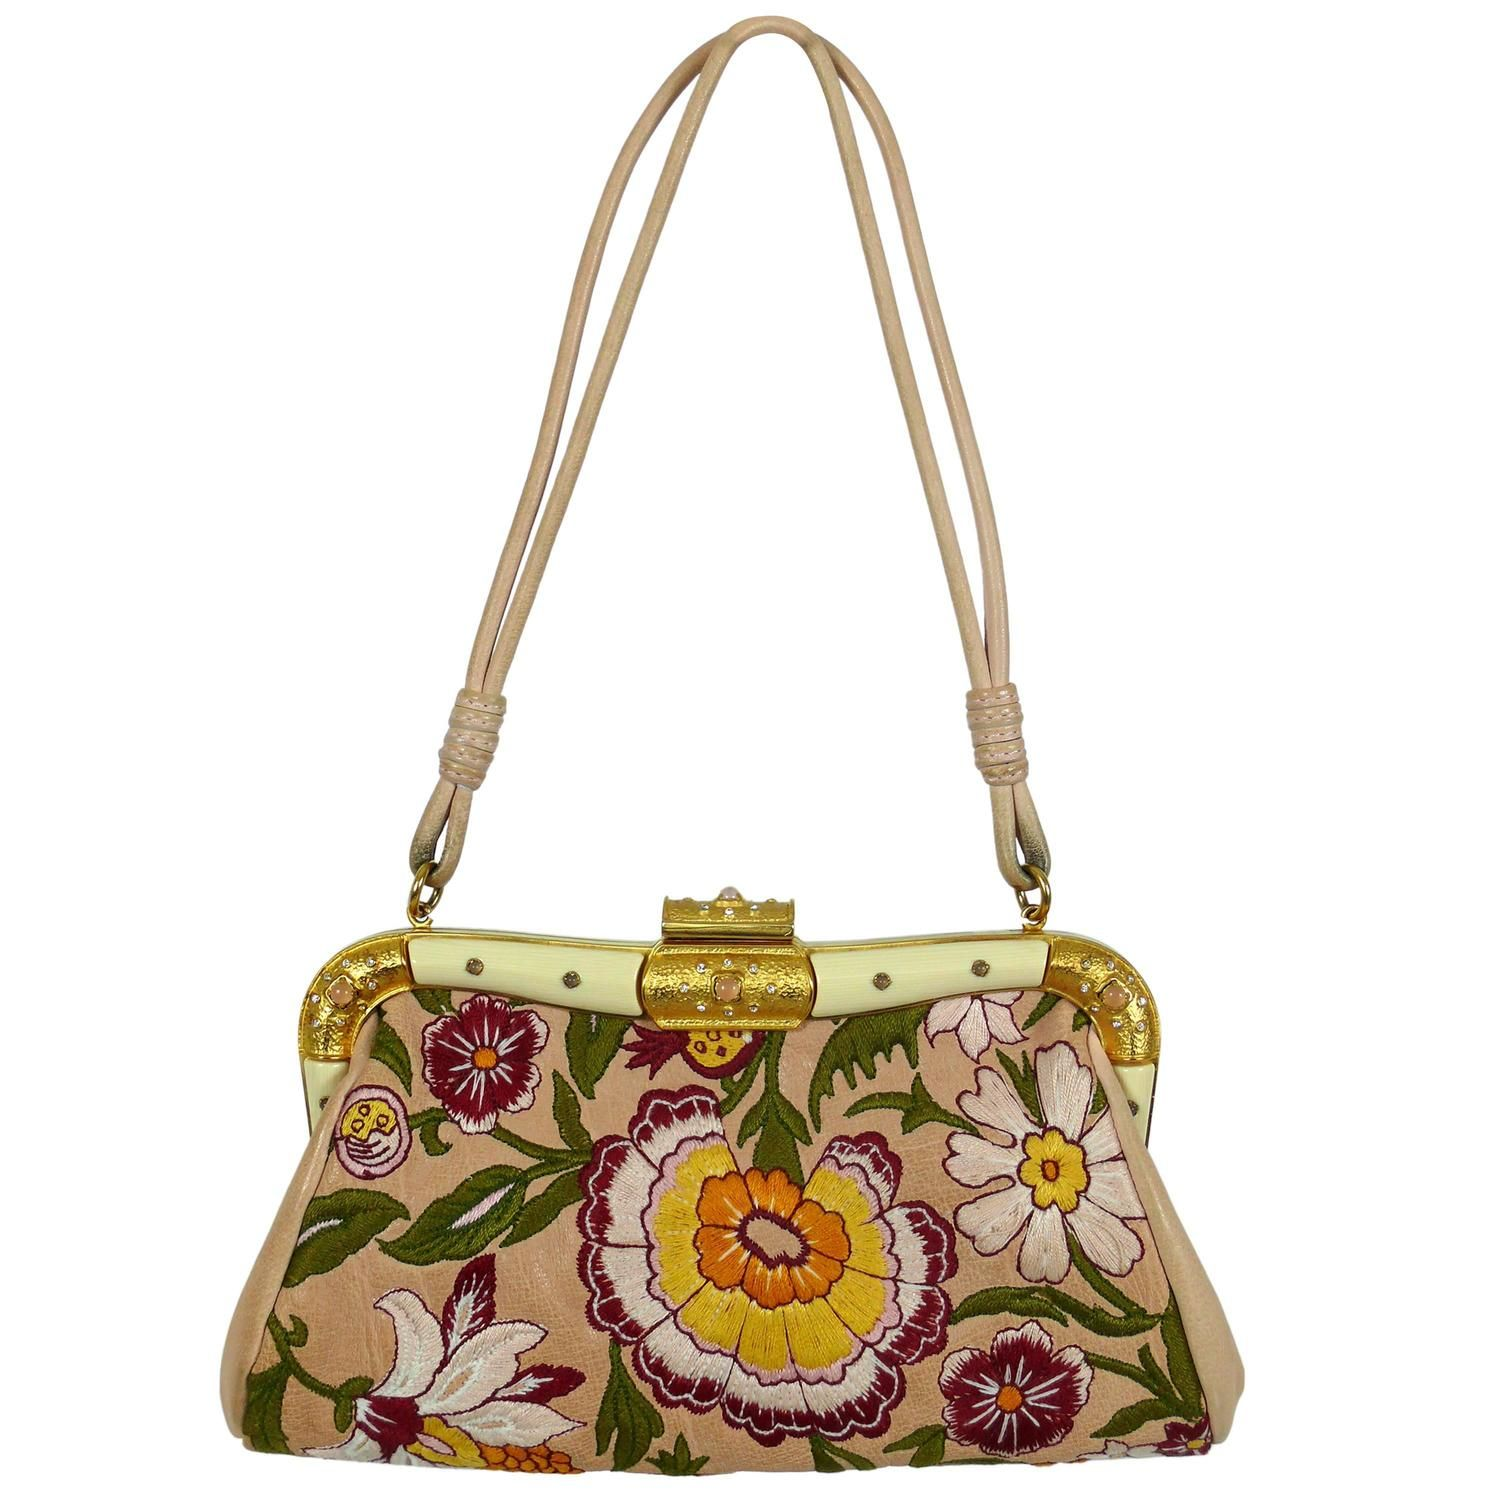 Garavani Embroidered Purse Vintage Valentino Clutch Leather avAnH